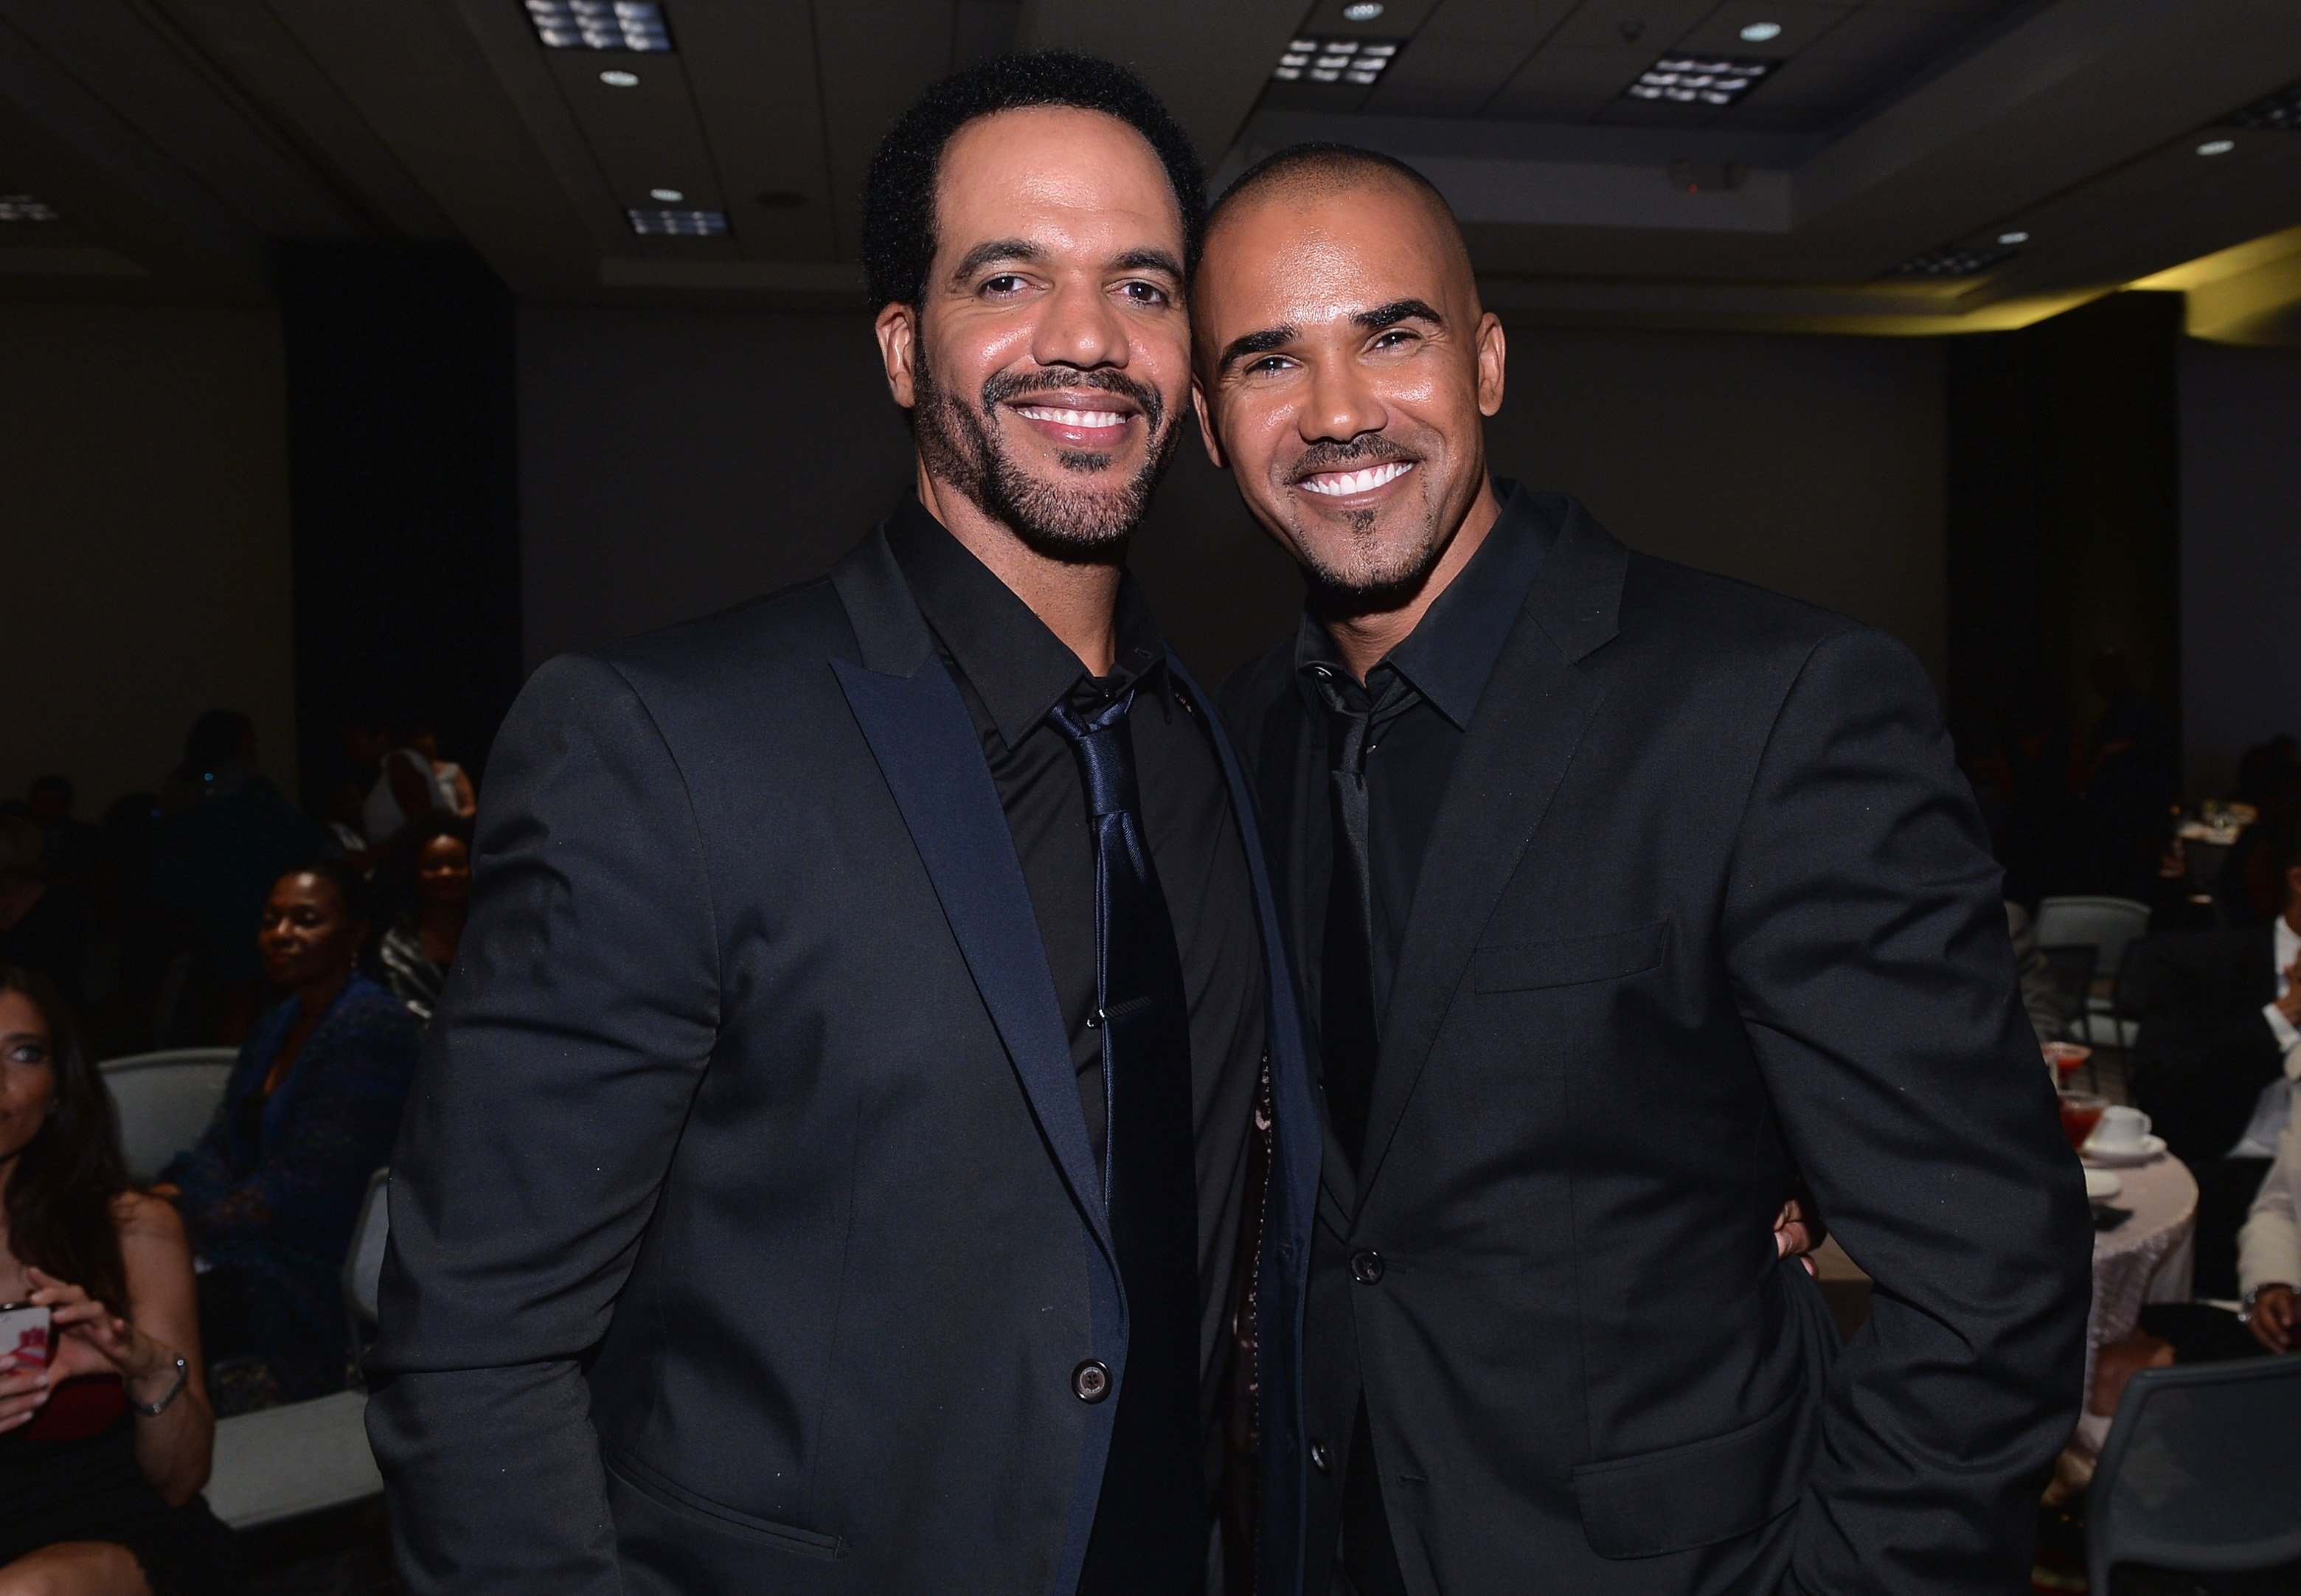 Kristoff St. John and Shemar Moore at the 45th NAACP Image Awards Non-Televised Awards Ceremony | Photo: Getty Images